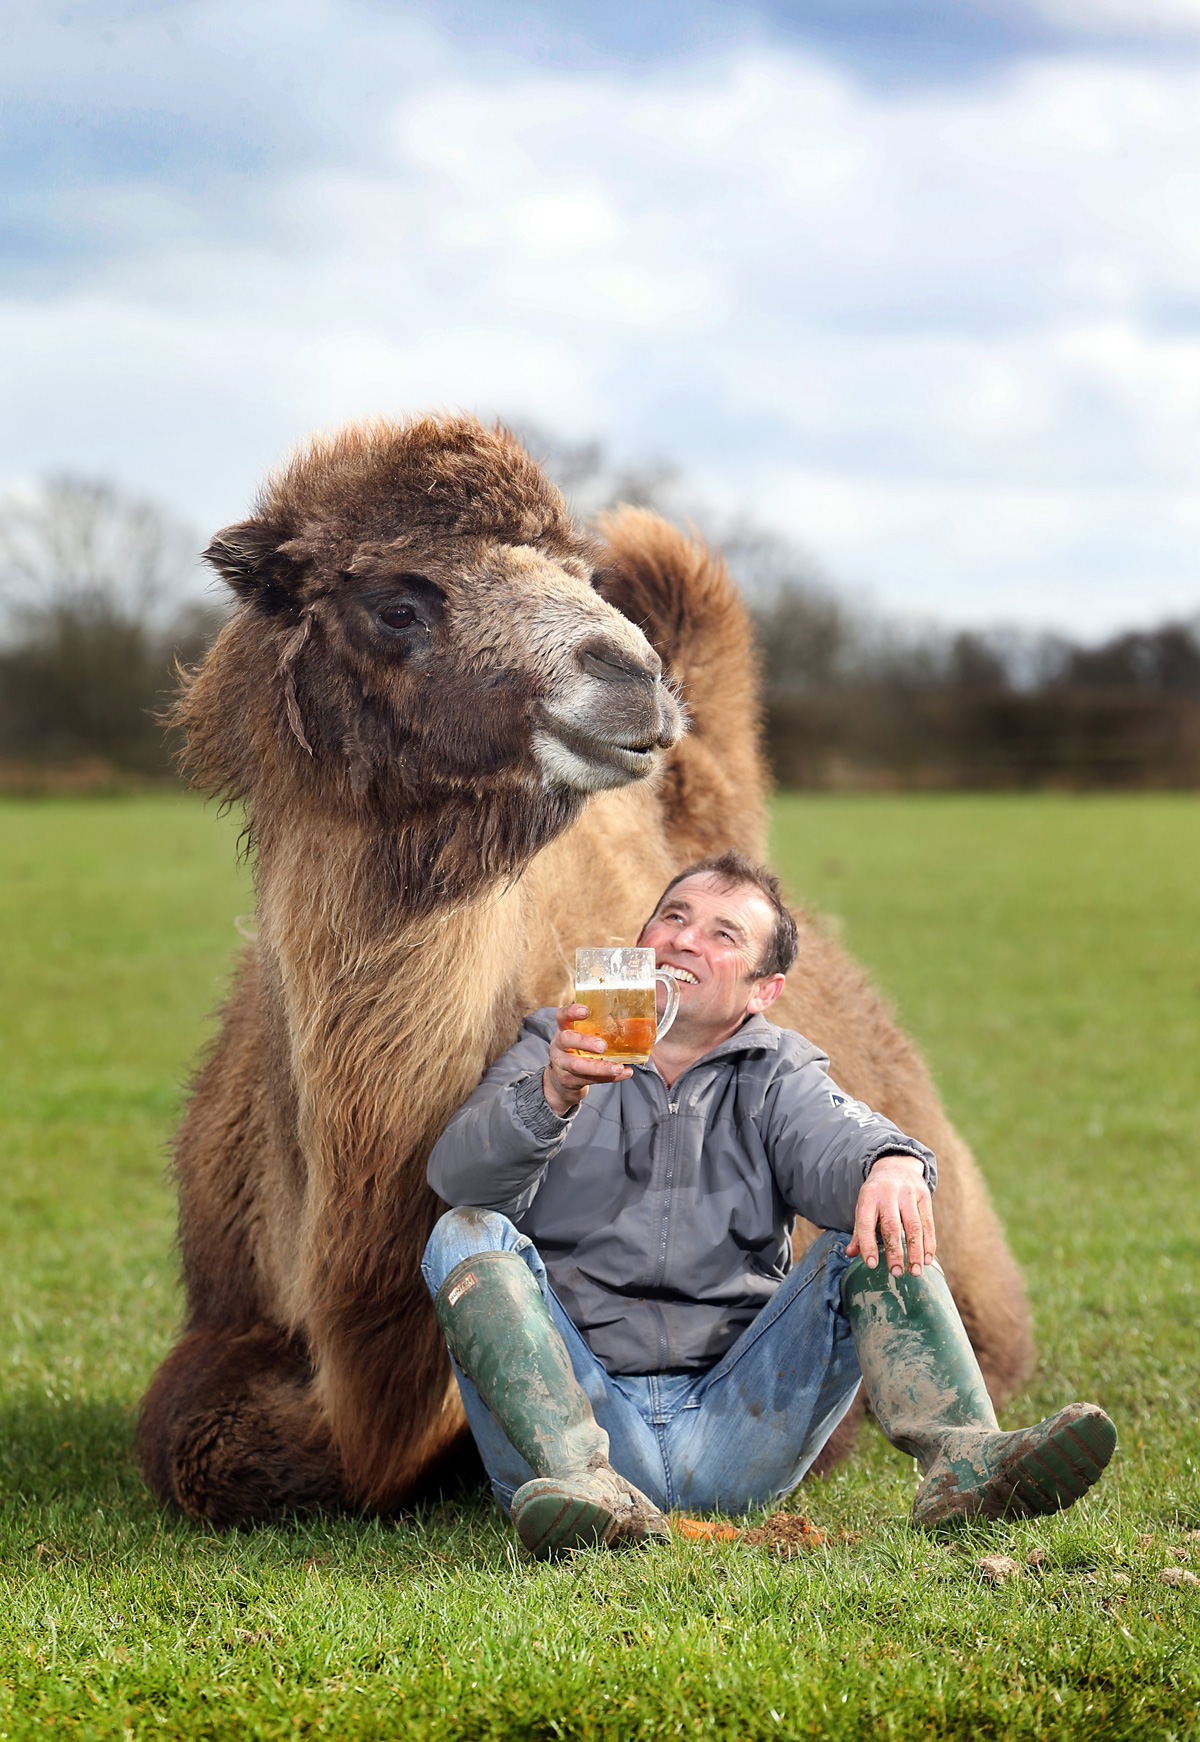 North Yorkshire family seeking new home with space for their beer-loving camel